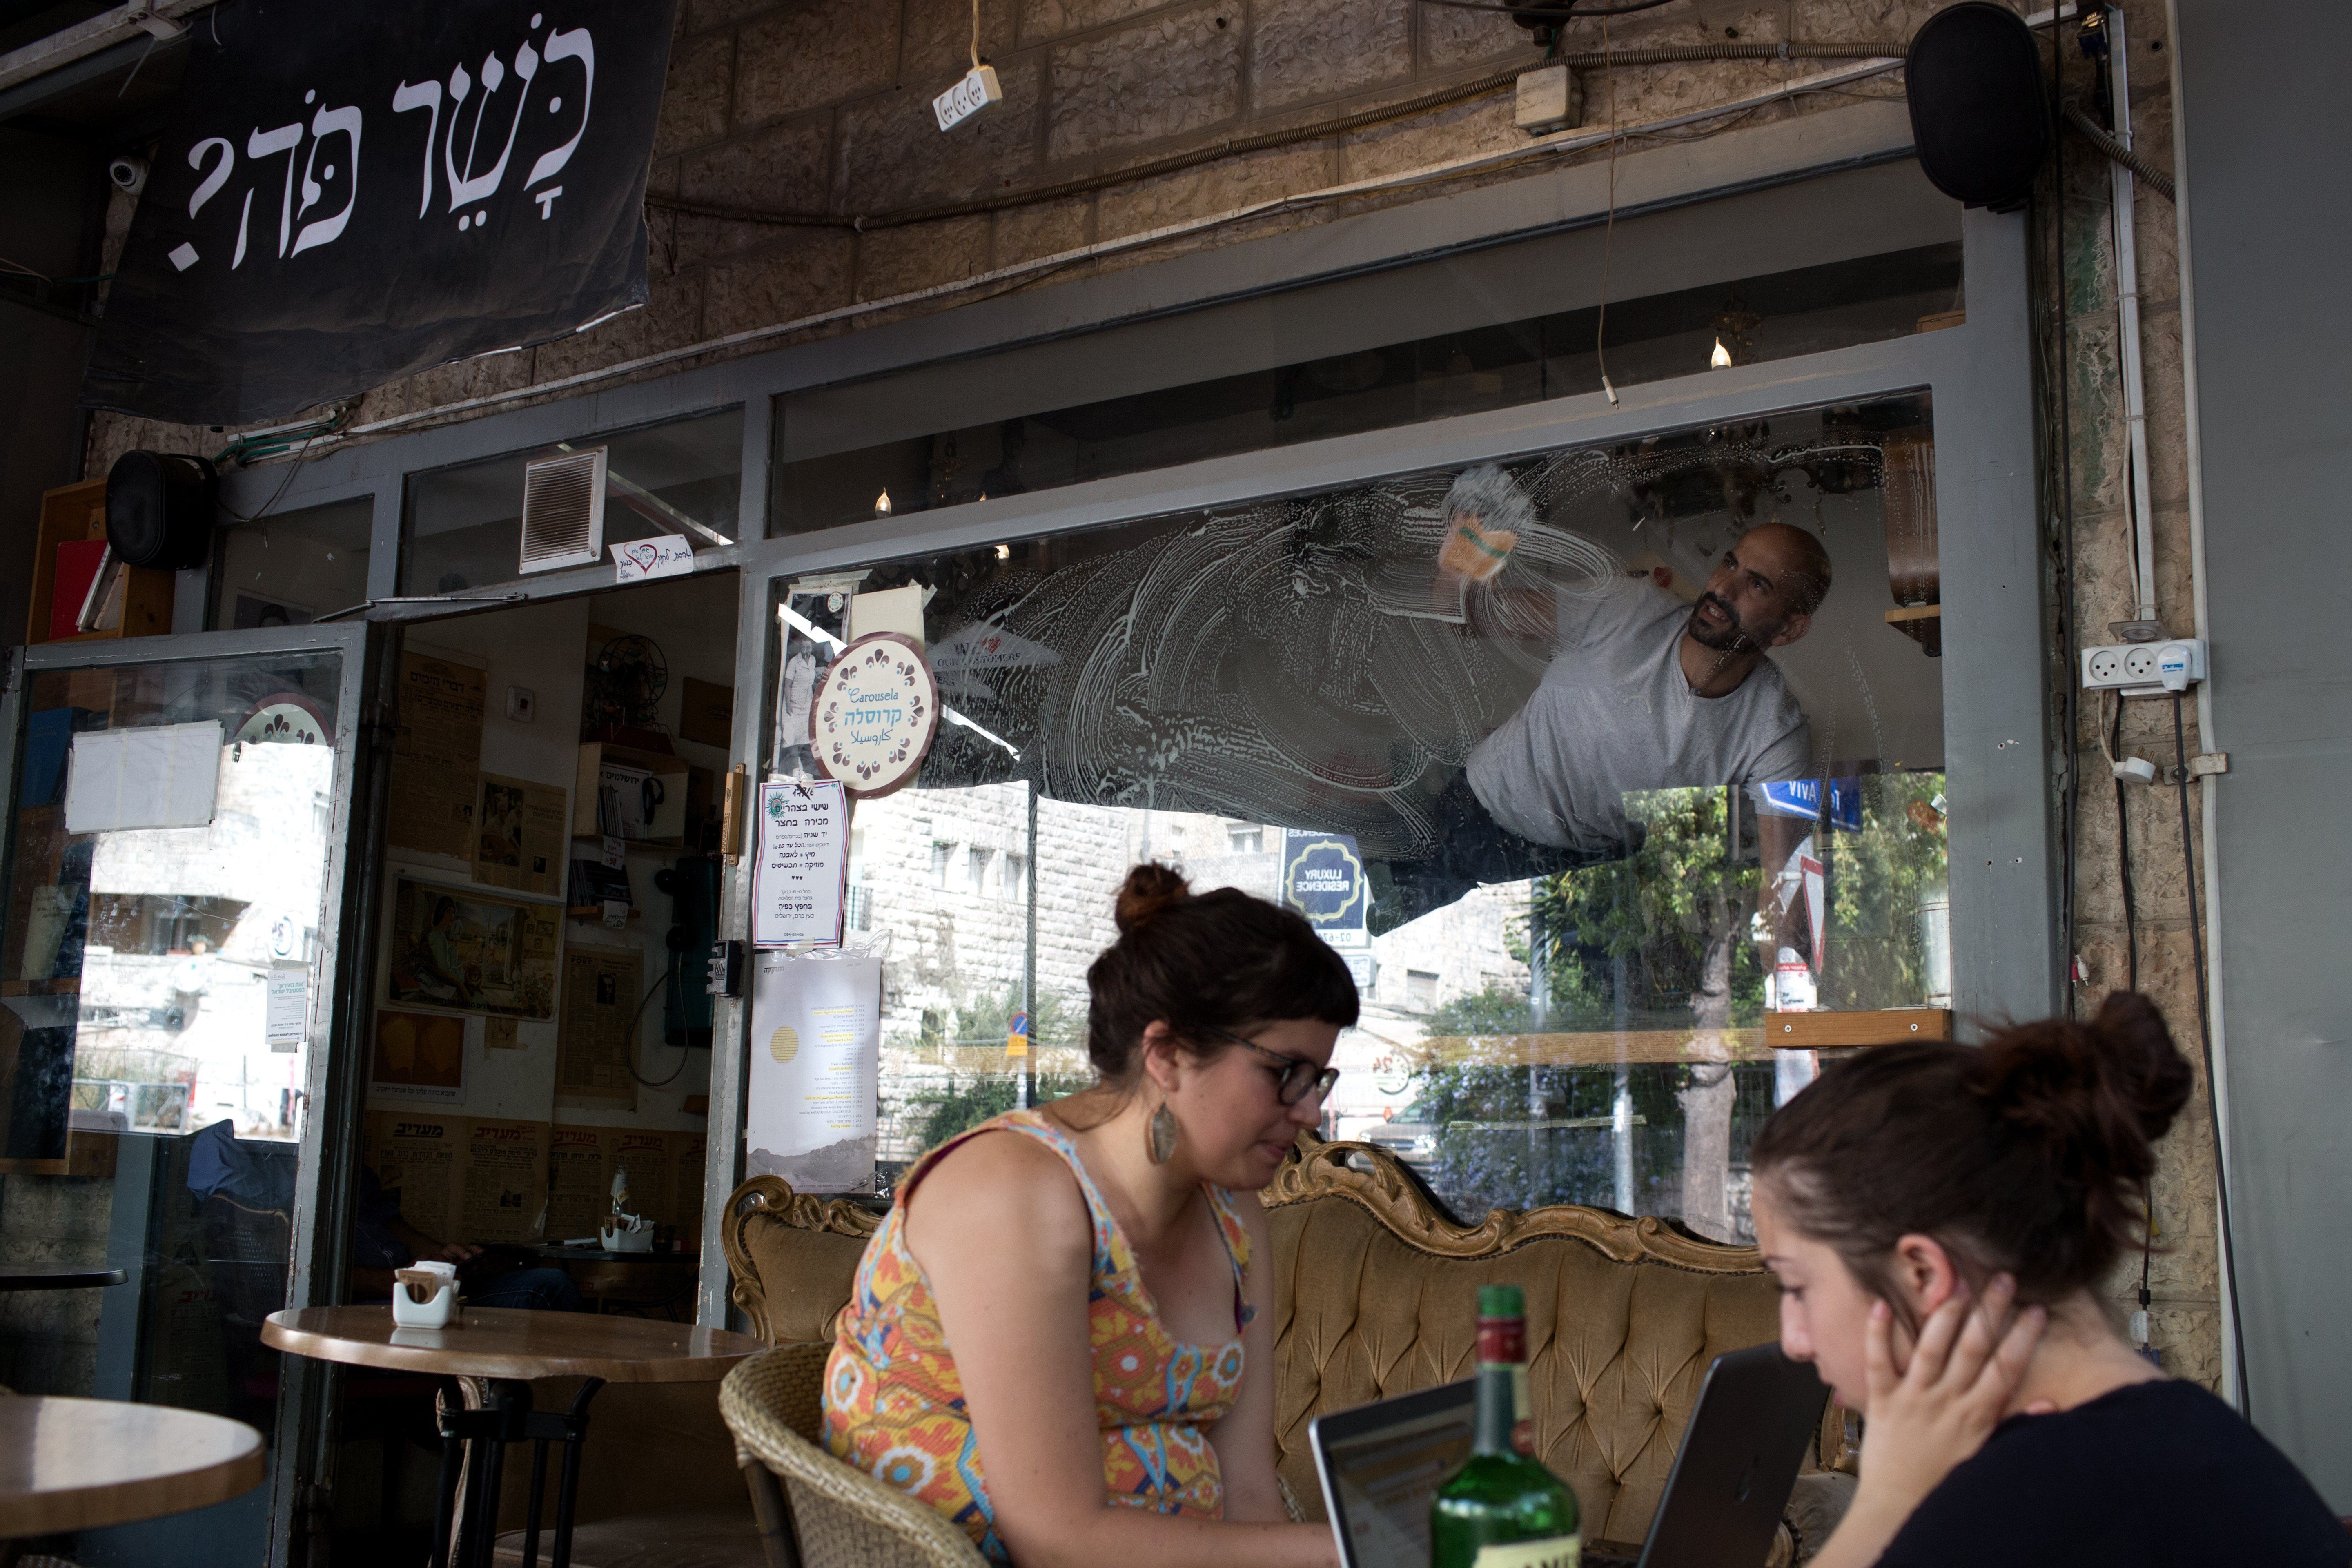 Diners at a cafe in West Jerusalem.